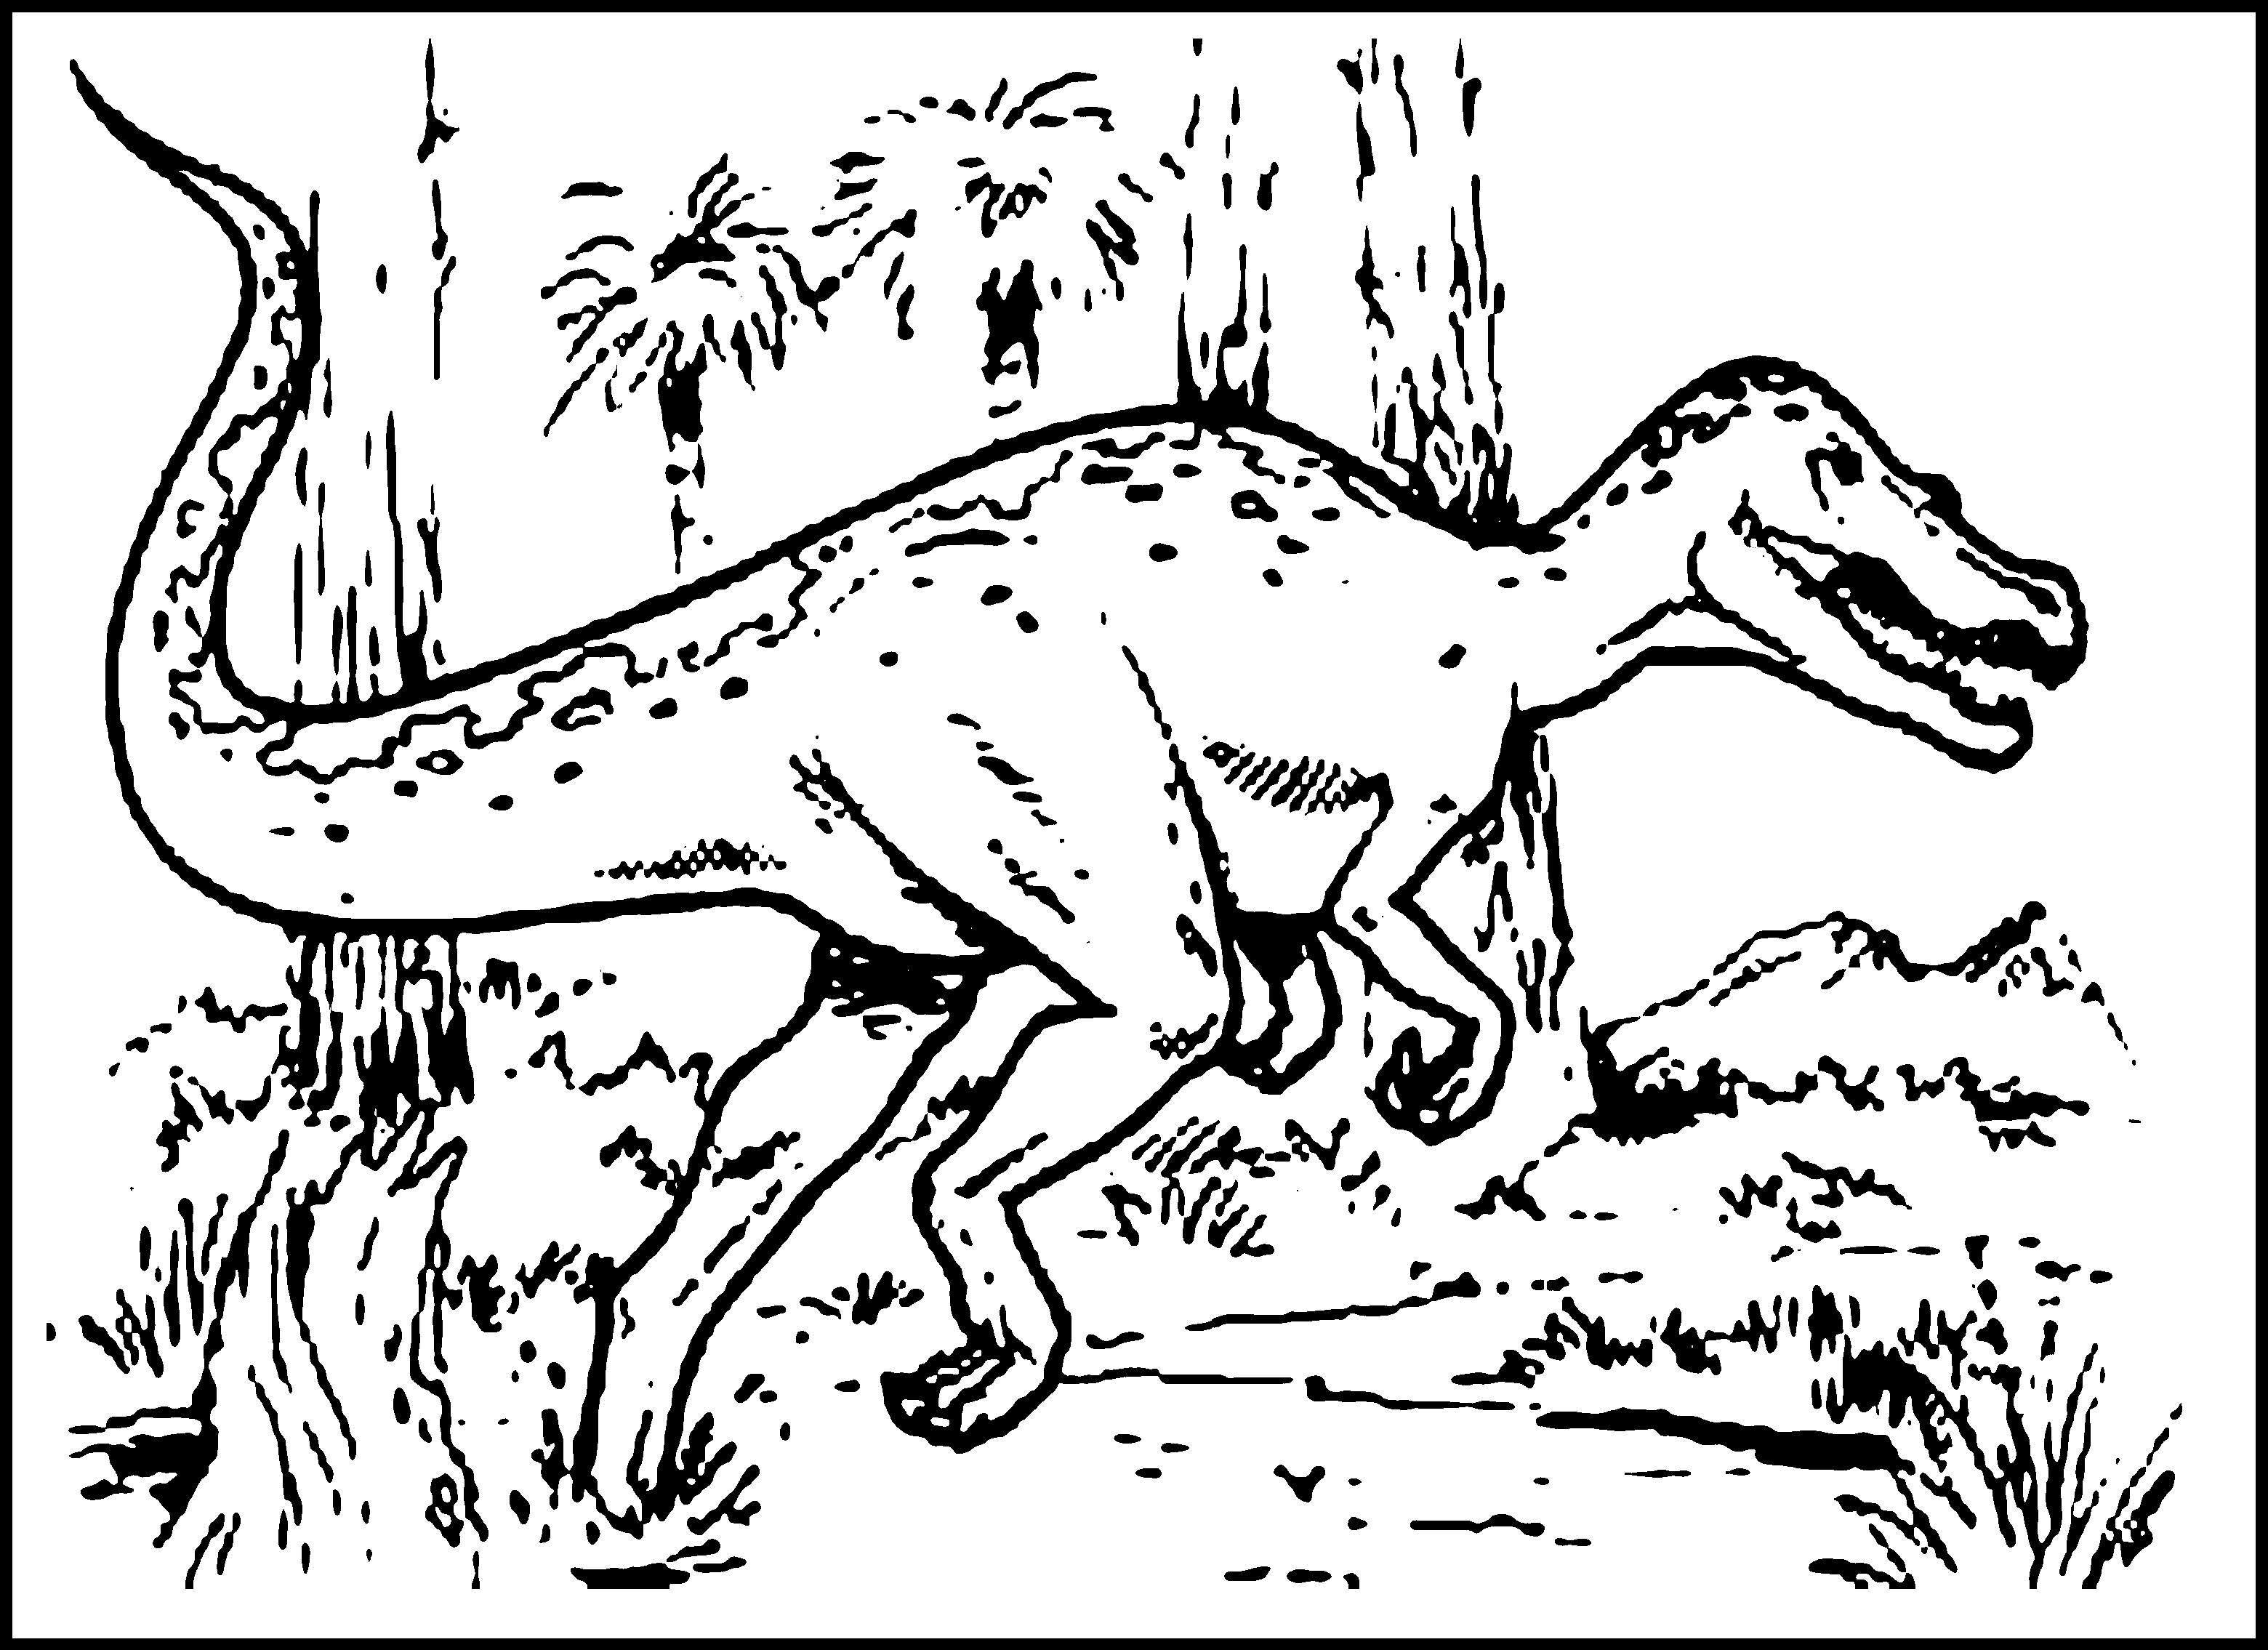 printable pictures of dinosaurs coloring pages dinosaur free printable coloring pages pictures printable of dinosaurs